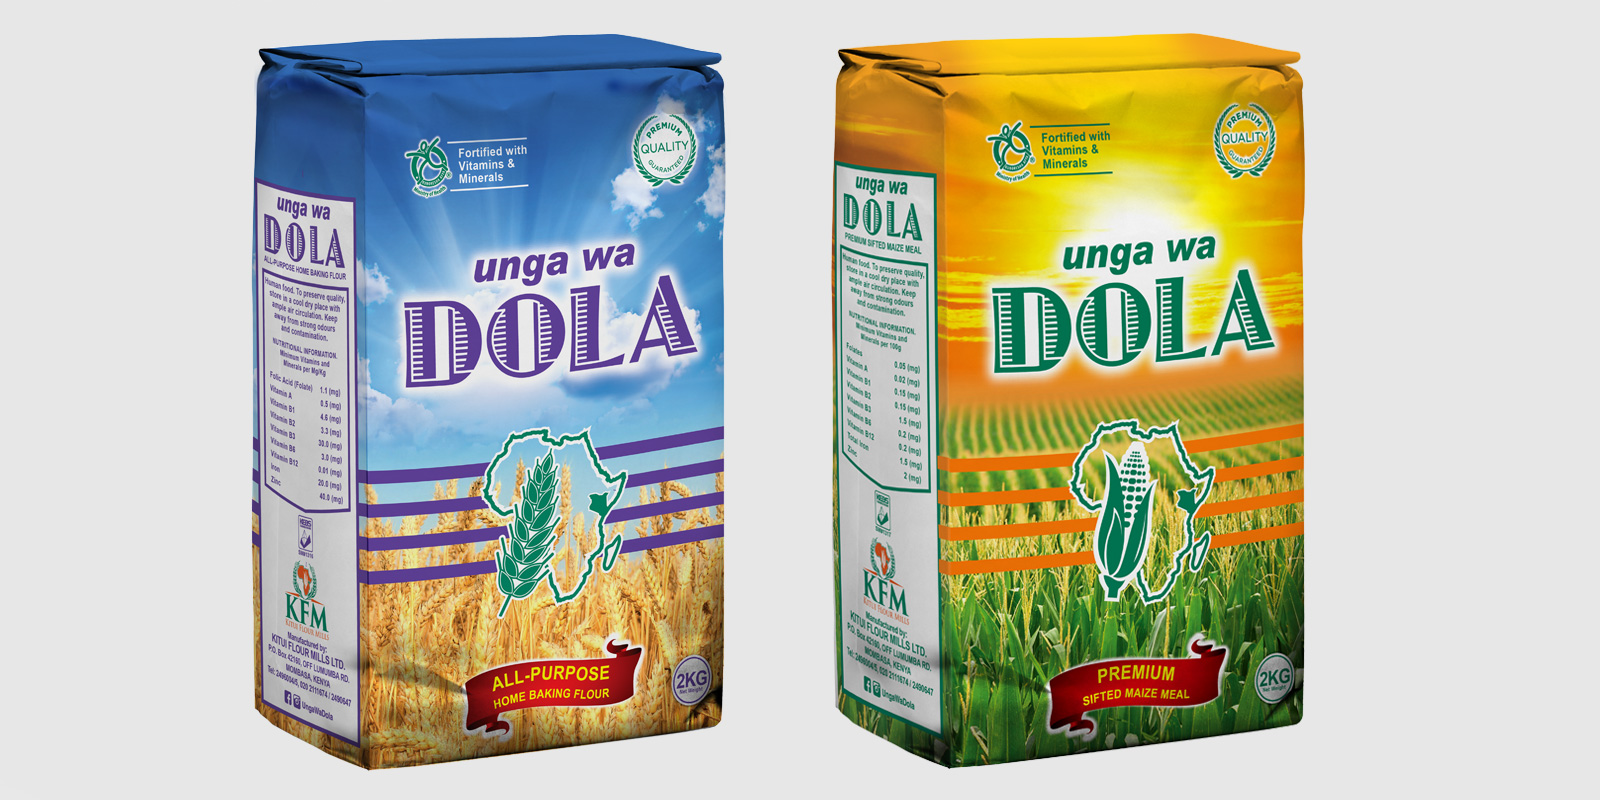 1-unga-wa-dola-packaging-design